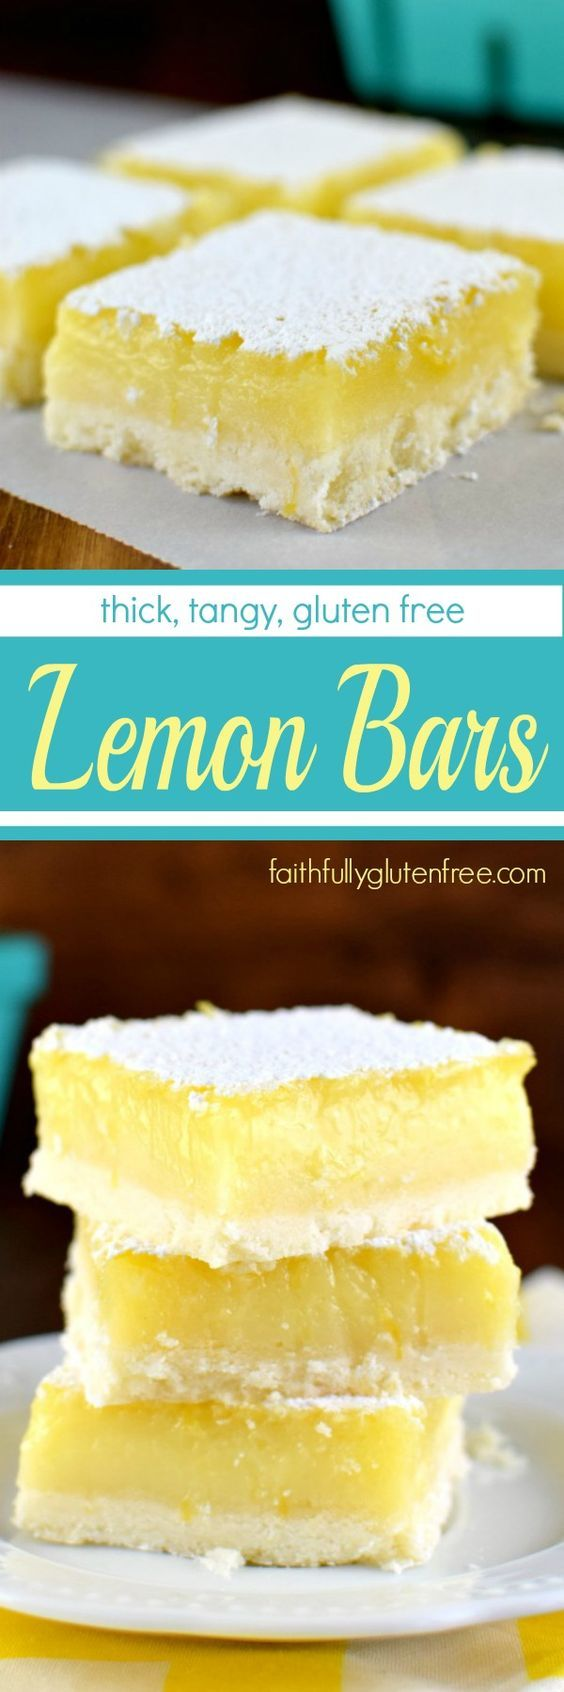 Thick Tangy Gluten Free Lemon Bars - just the way lemon bars are supposed to be!